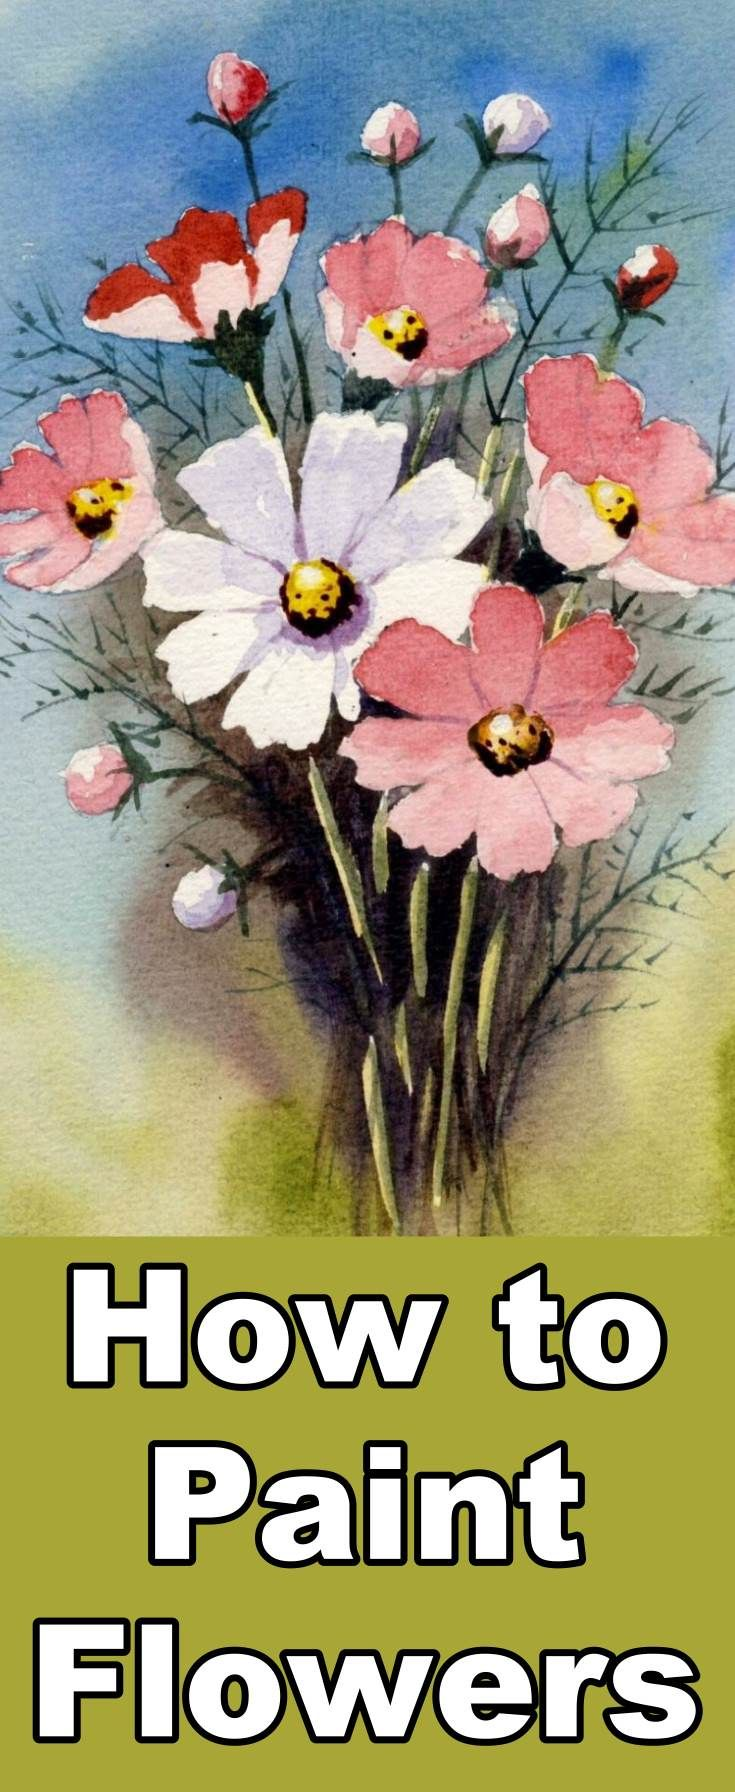 Learn how to paint flowers with this watercolor painting class